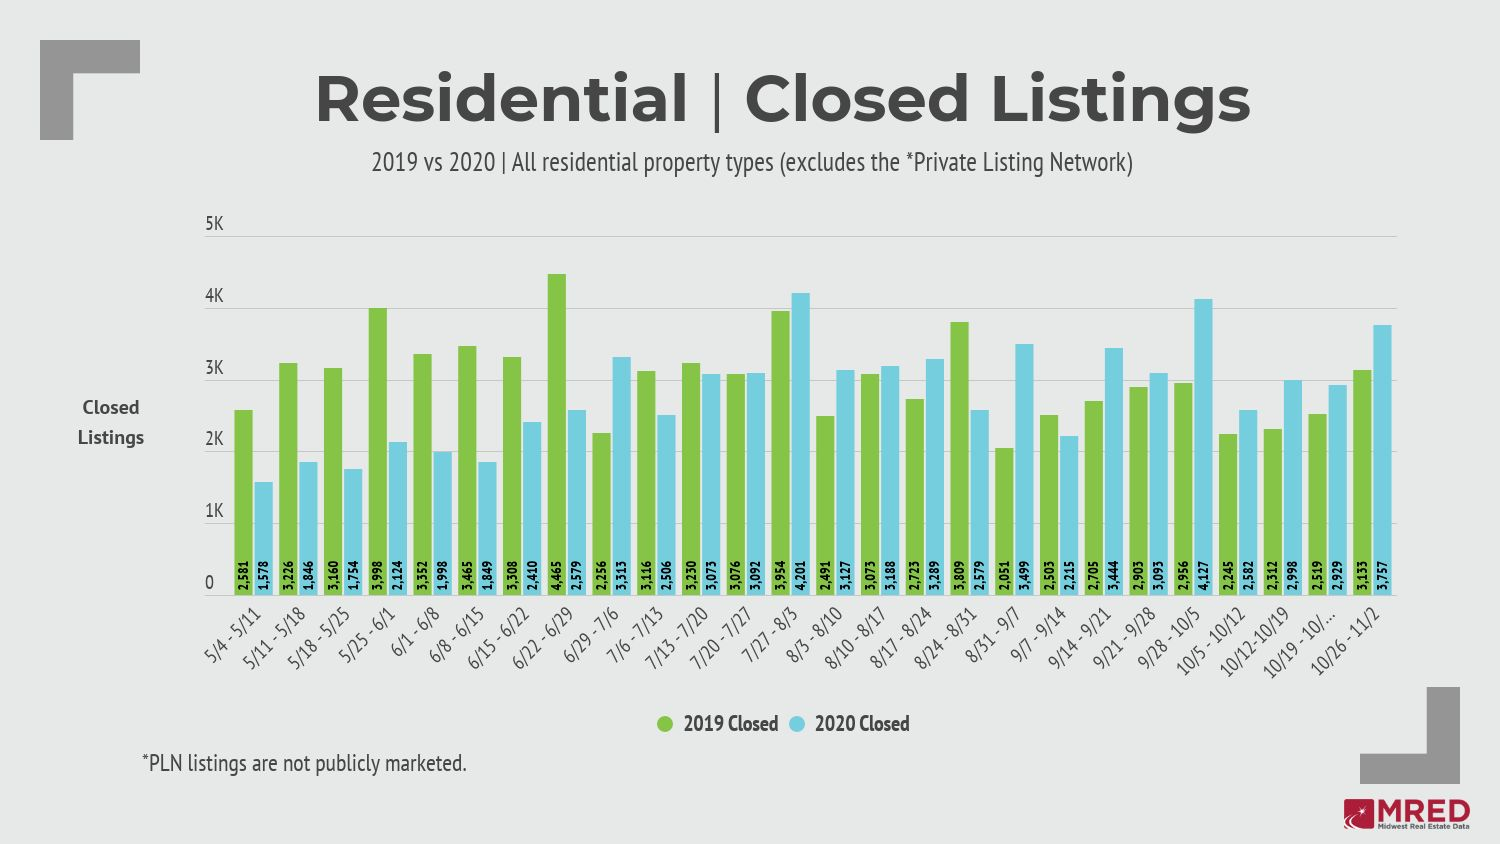 Chicago area housing sales are strong and stable